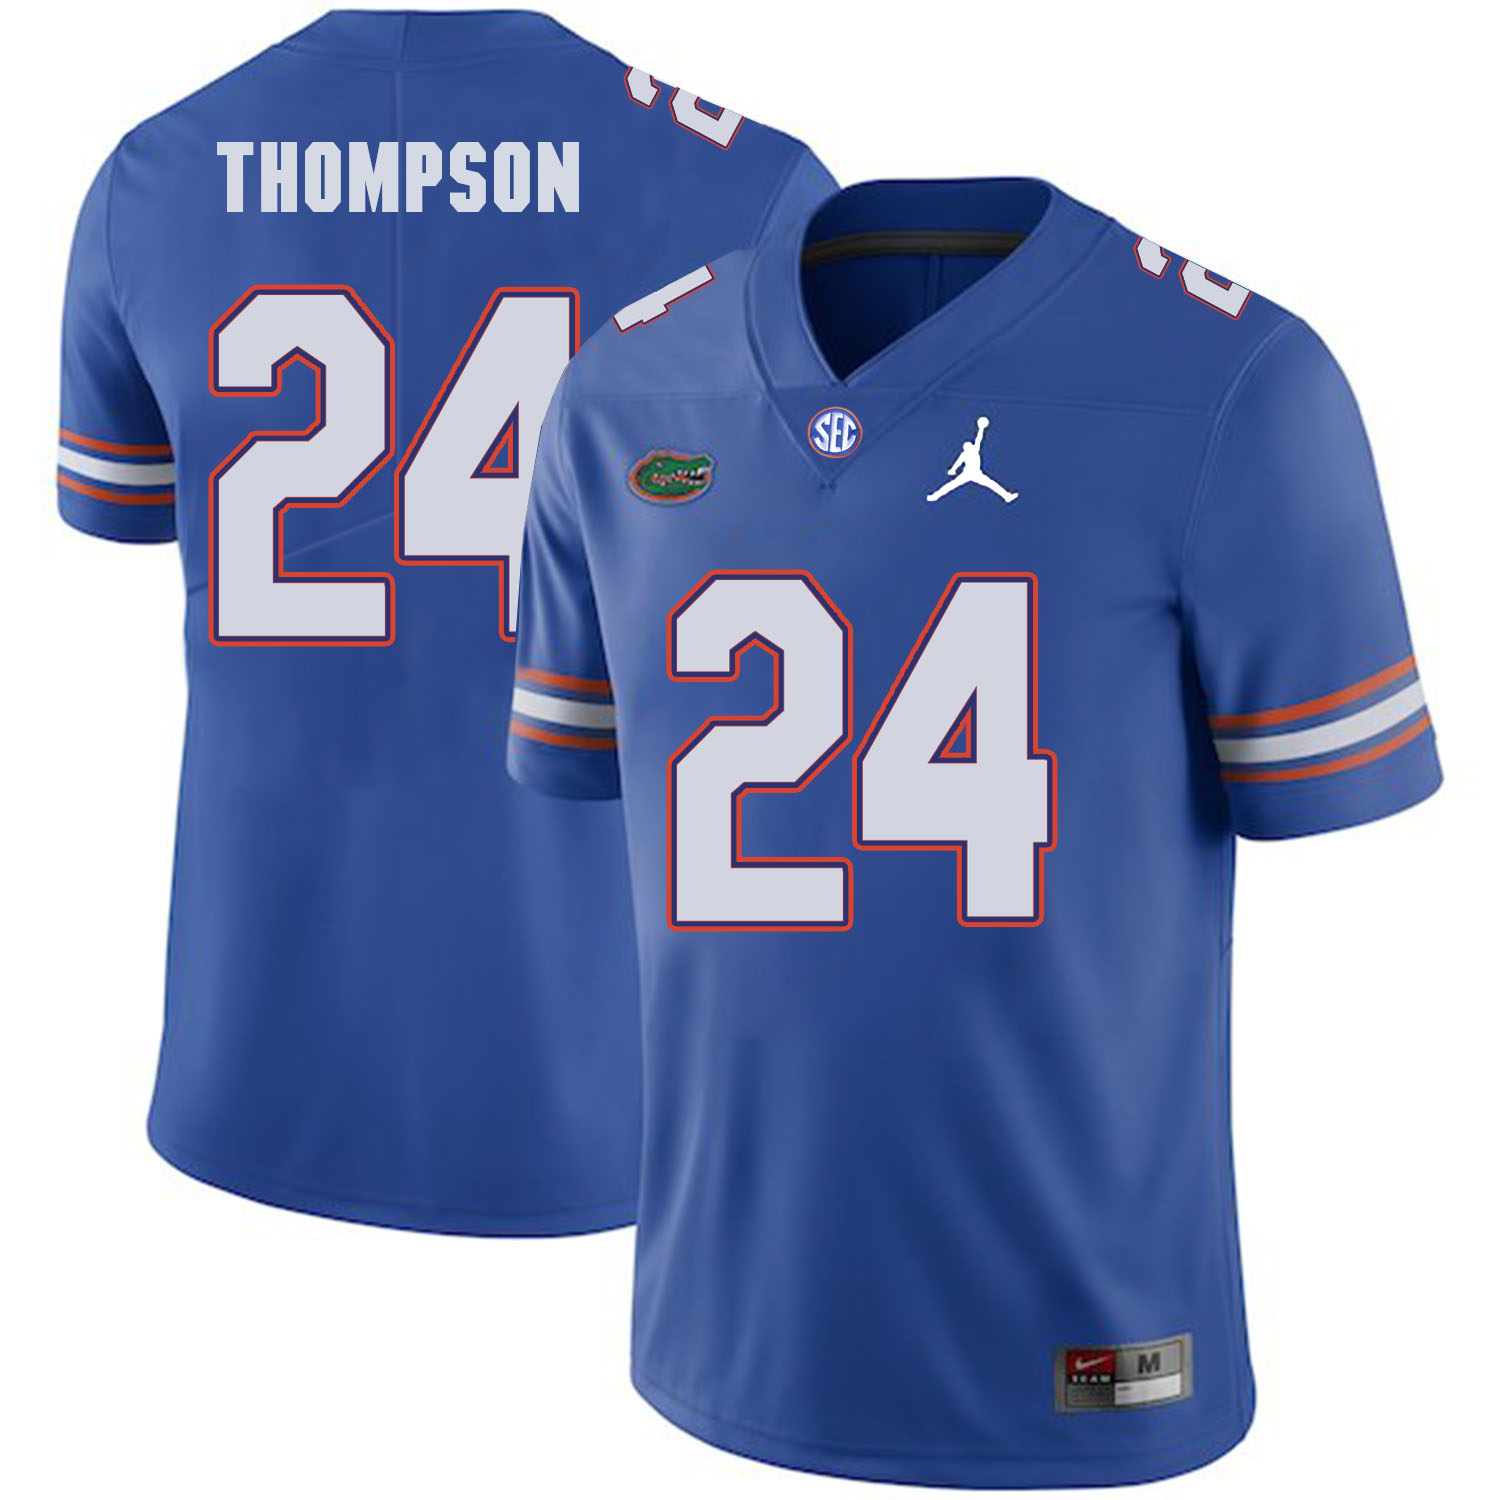 Florida Gators 24 Mark Thompson Blue College Football Jersey